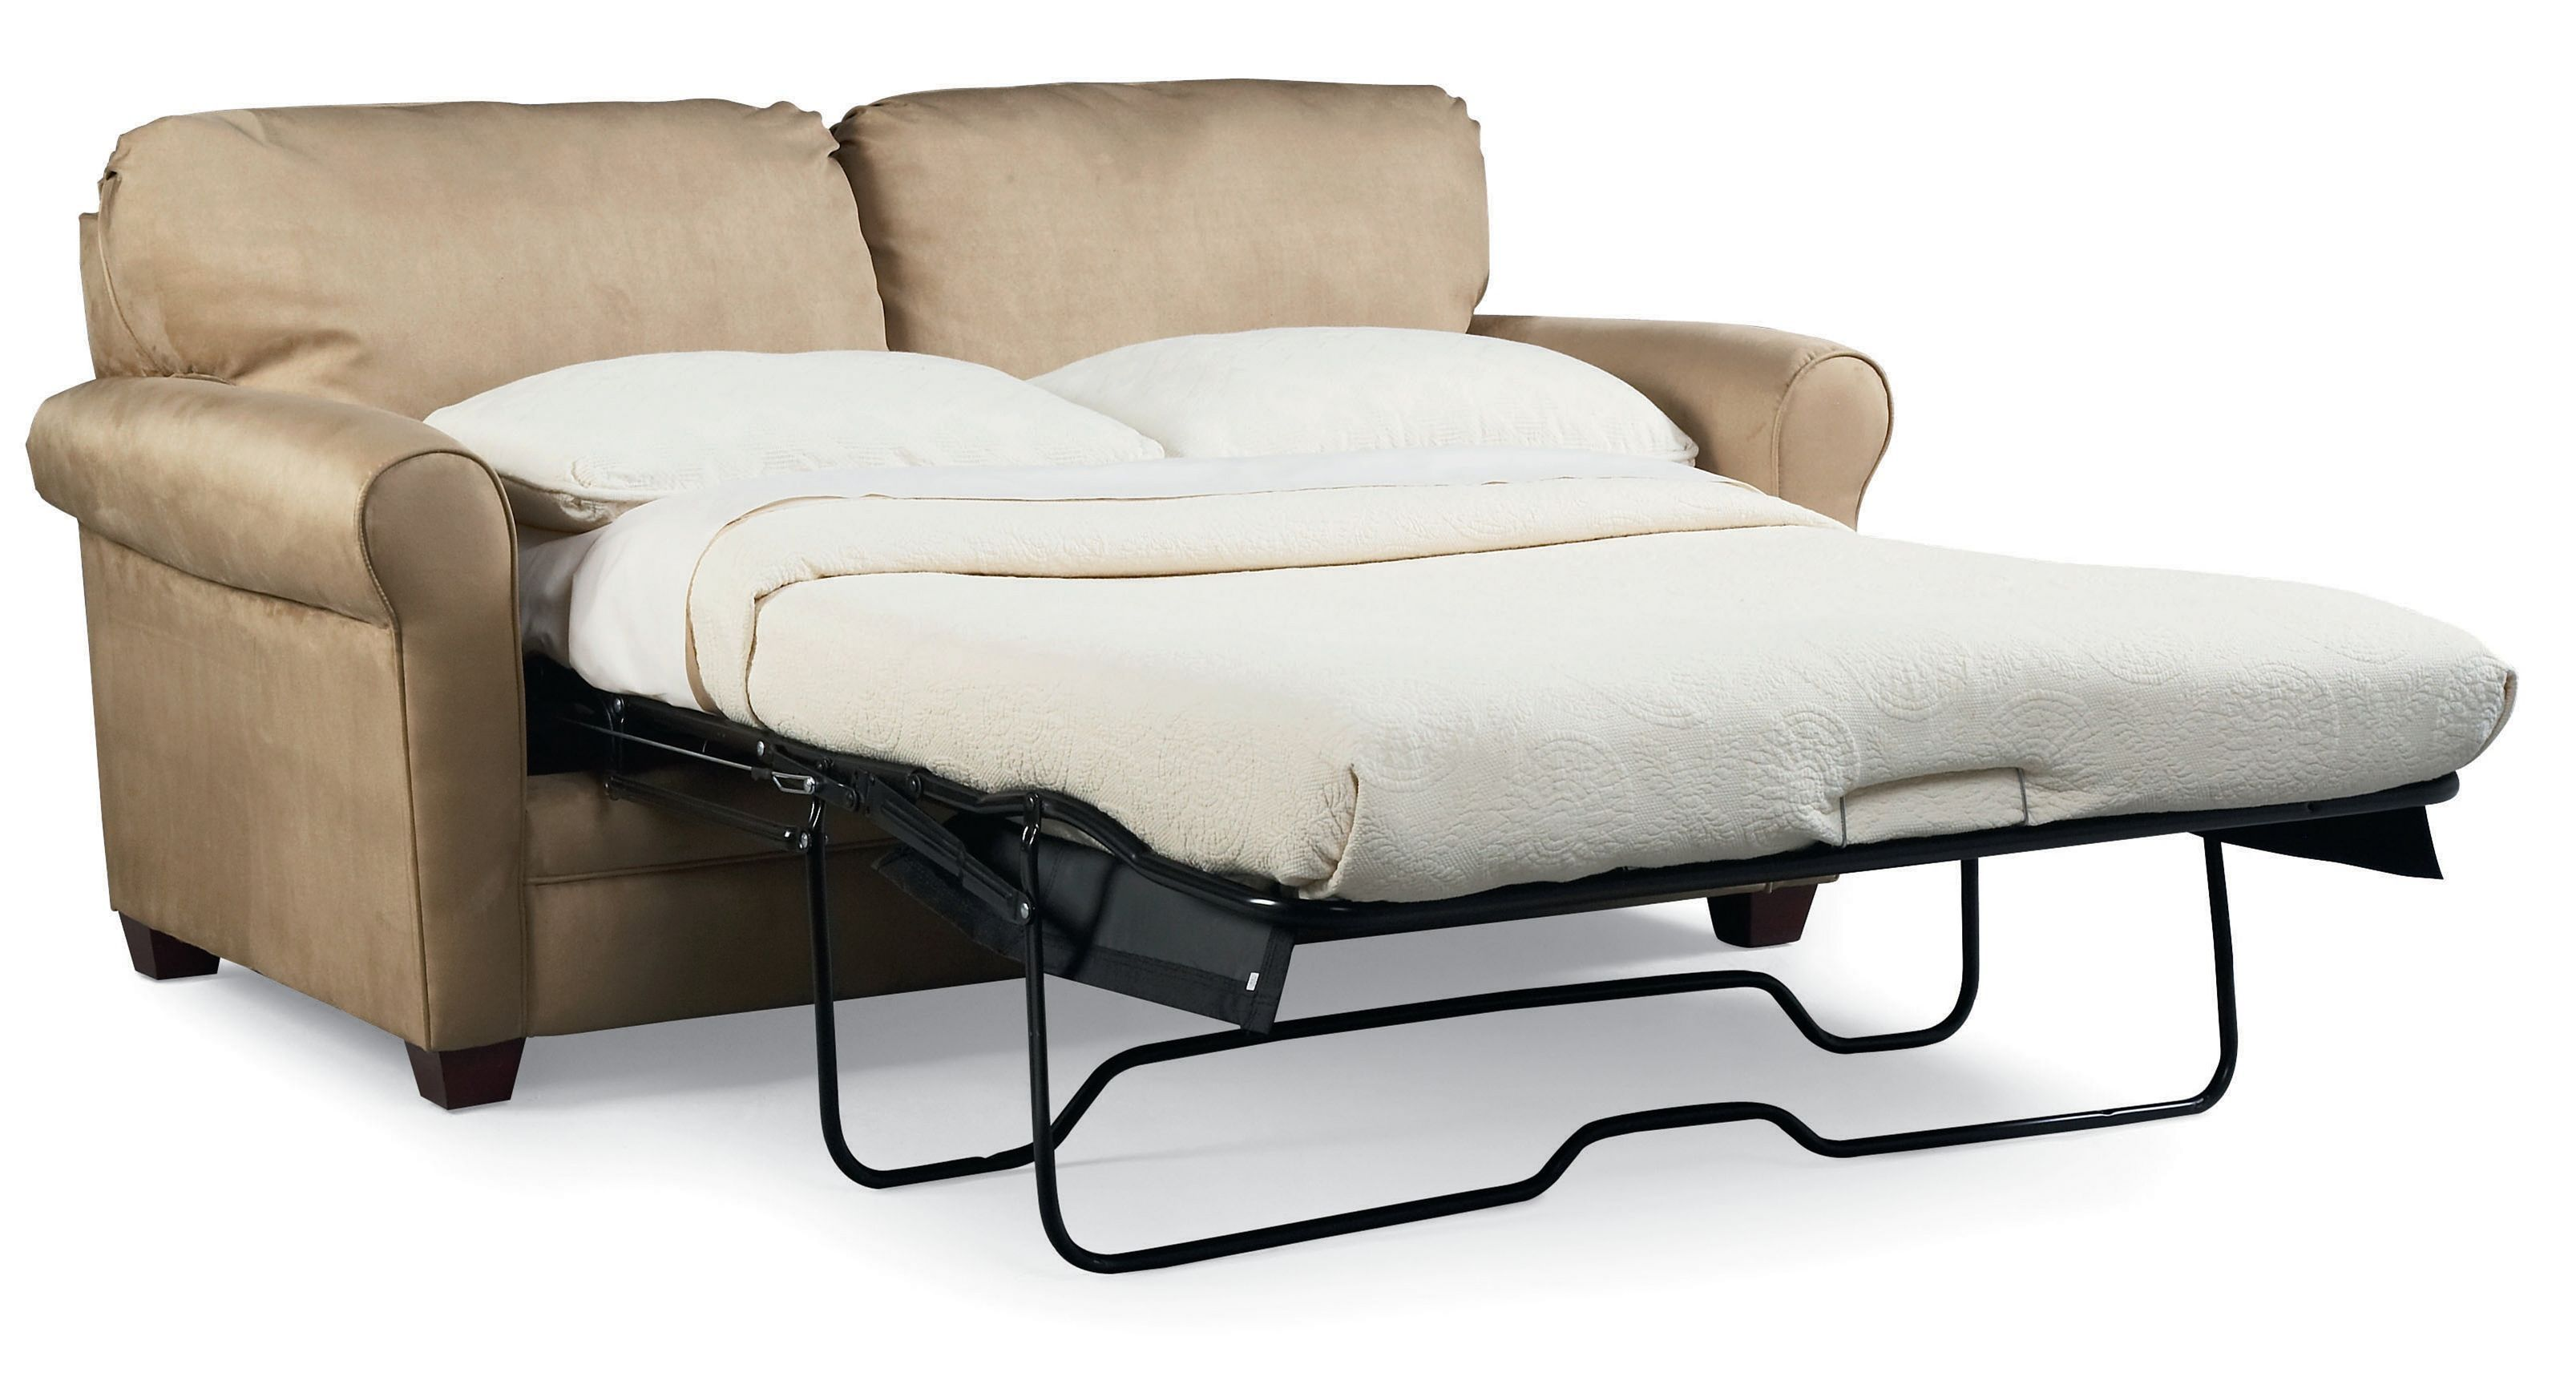 Marvelous Sleeper Sofa Sheets Queen   It Is Necessary To Comprehend The Limitations  Of The Sofas You Are Shopping For. Where You Wou